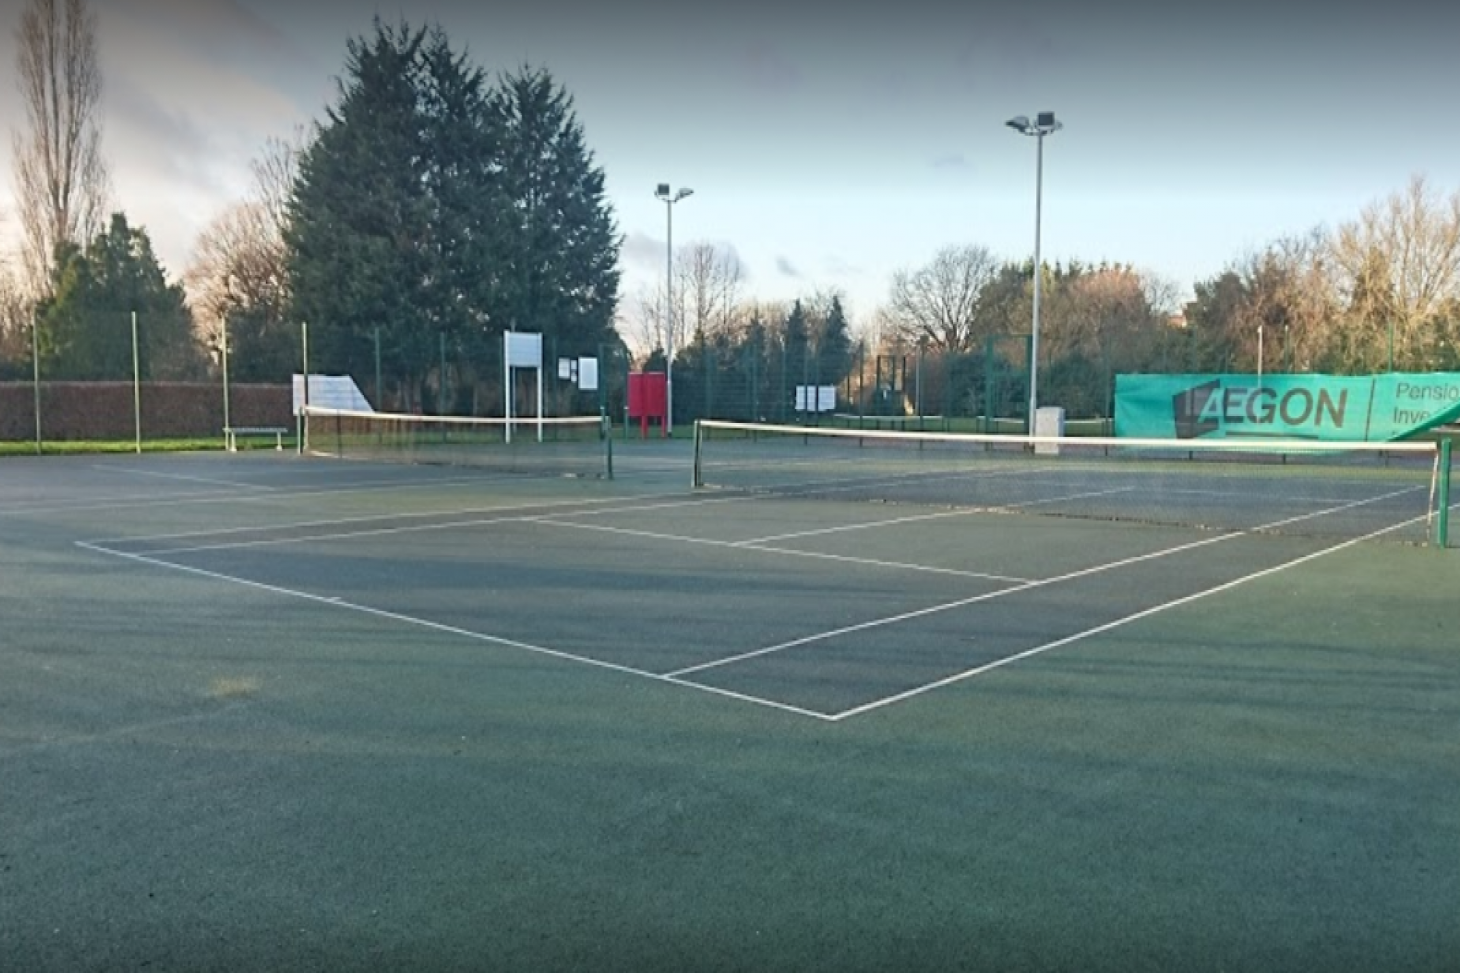 Hornfair Park Outdoor | Hard (macadam) tennis court